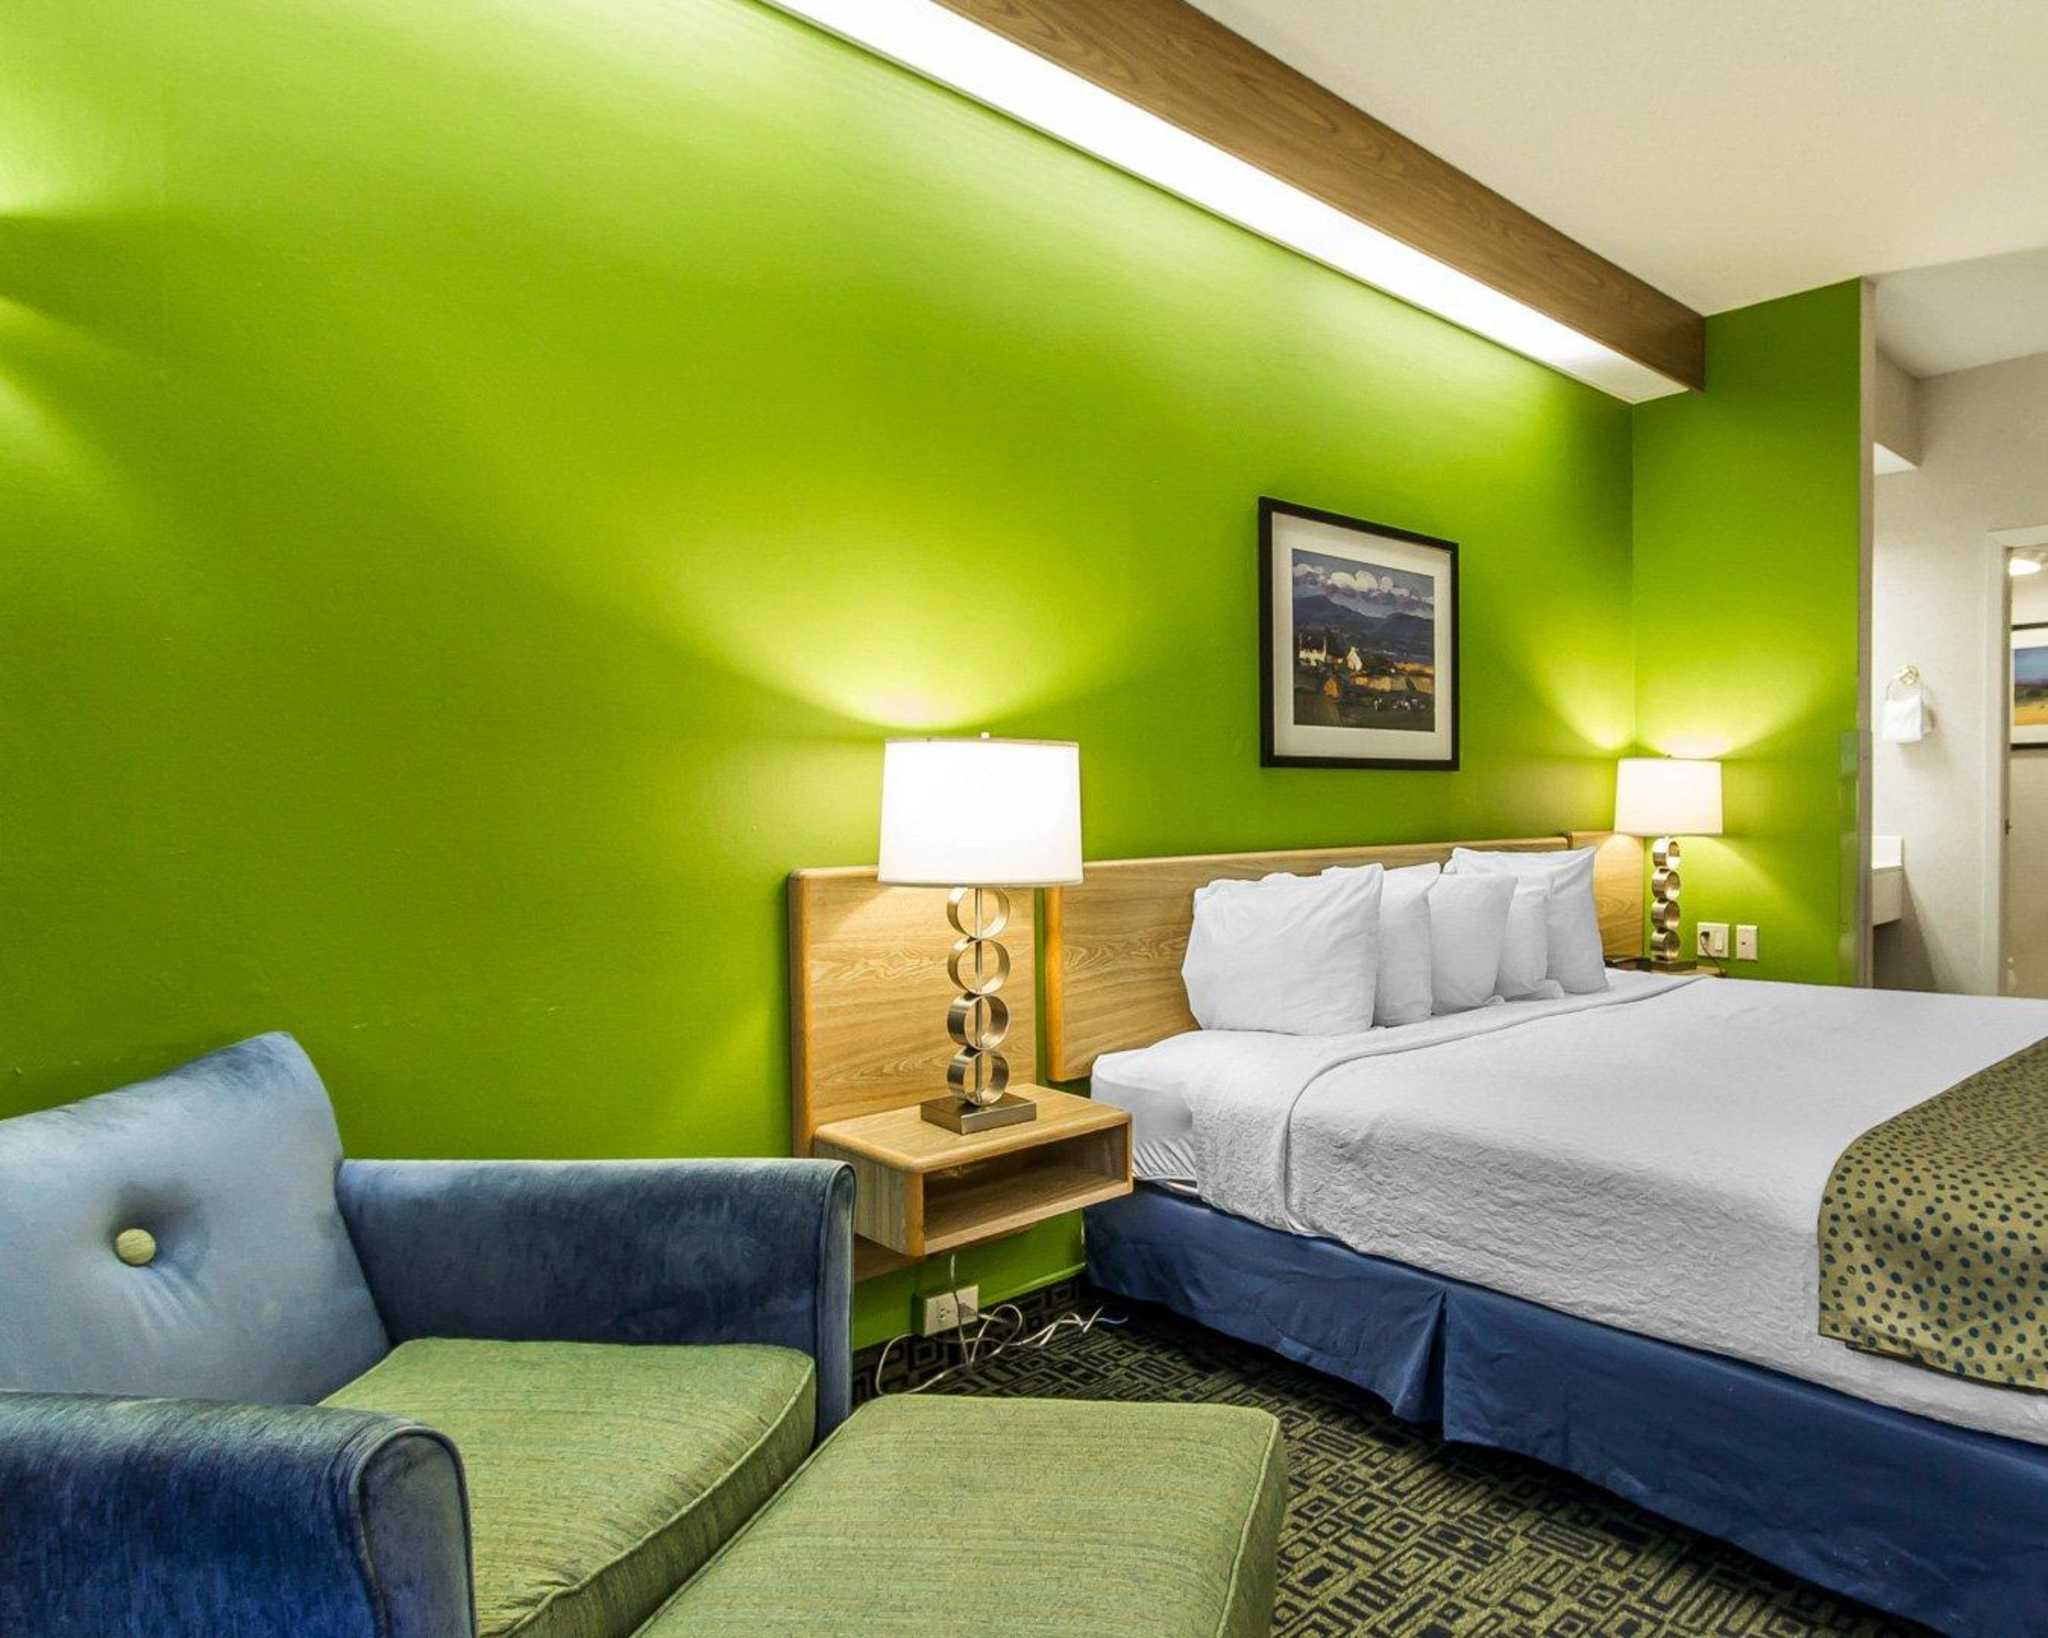 Hotels In Des Moines With Poolside Rooms